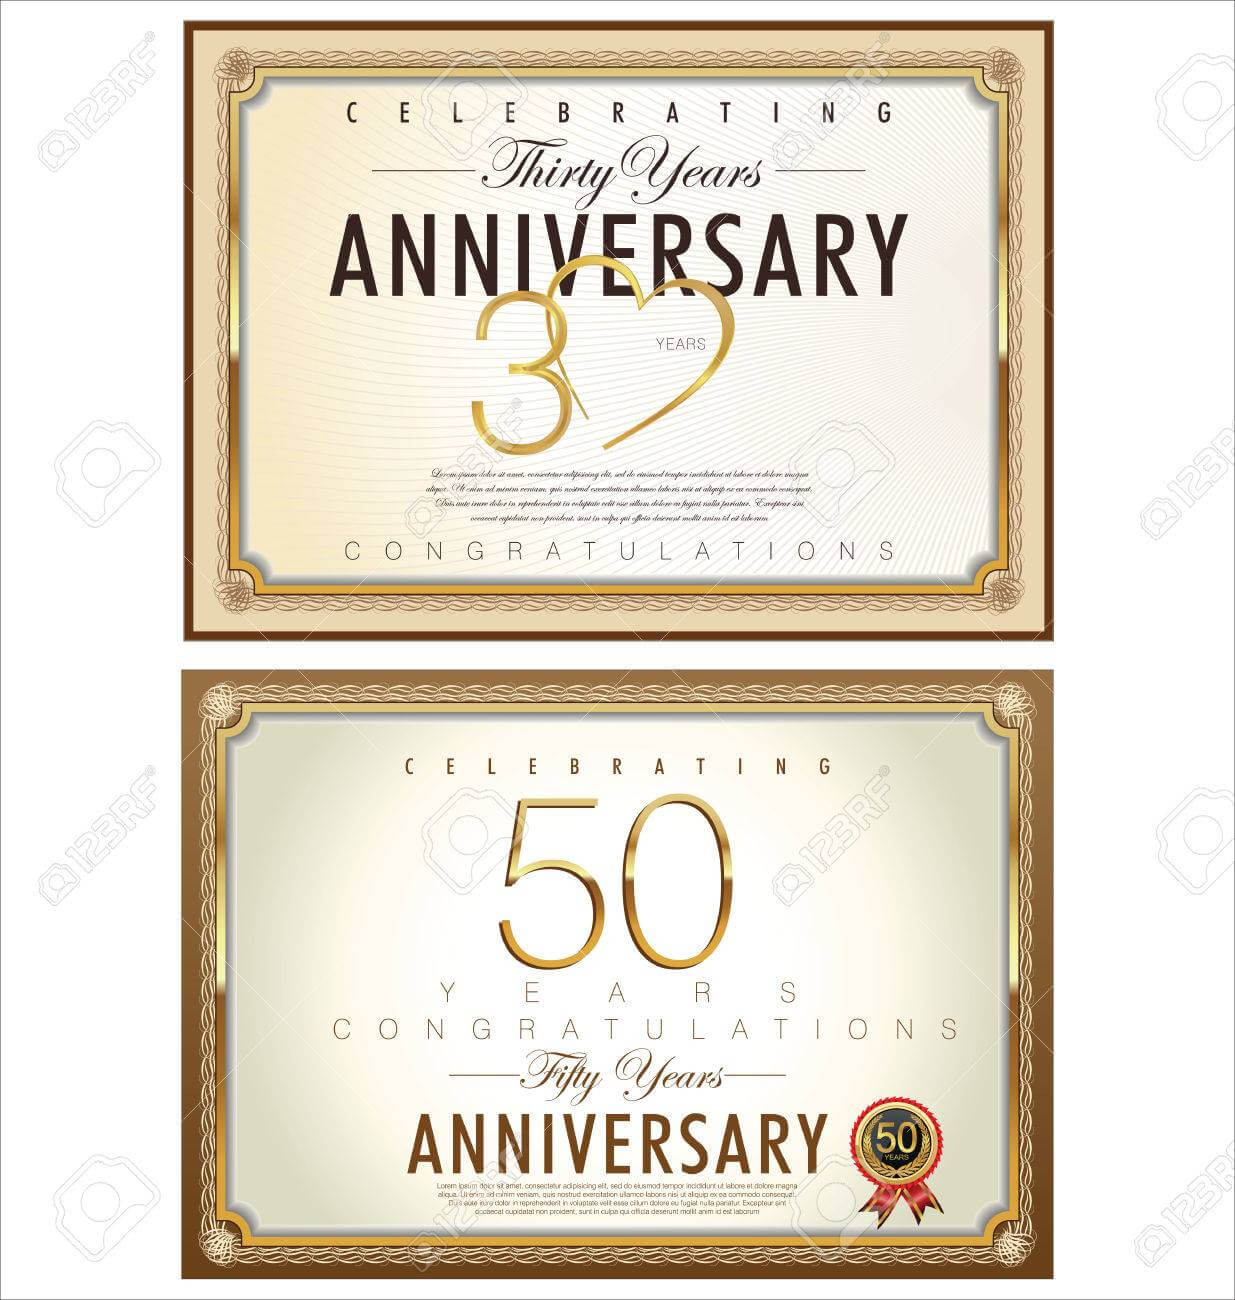 Anniversary Certificate Template Intended For Anniversary within Anniversary Certificate Template Free